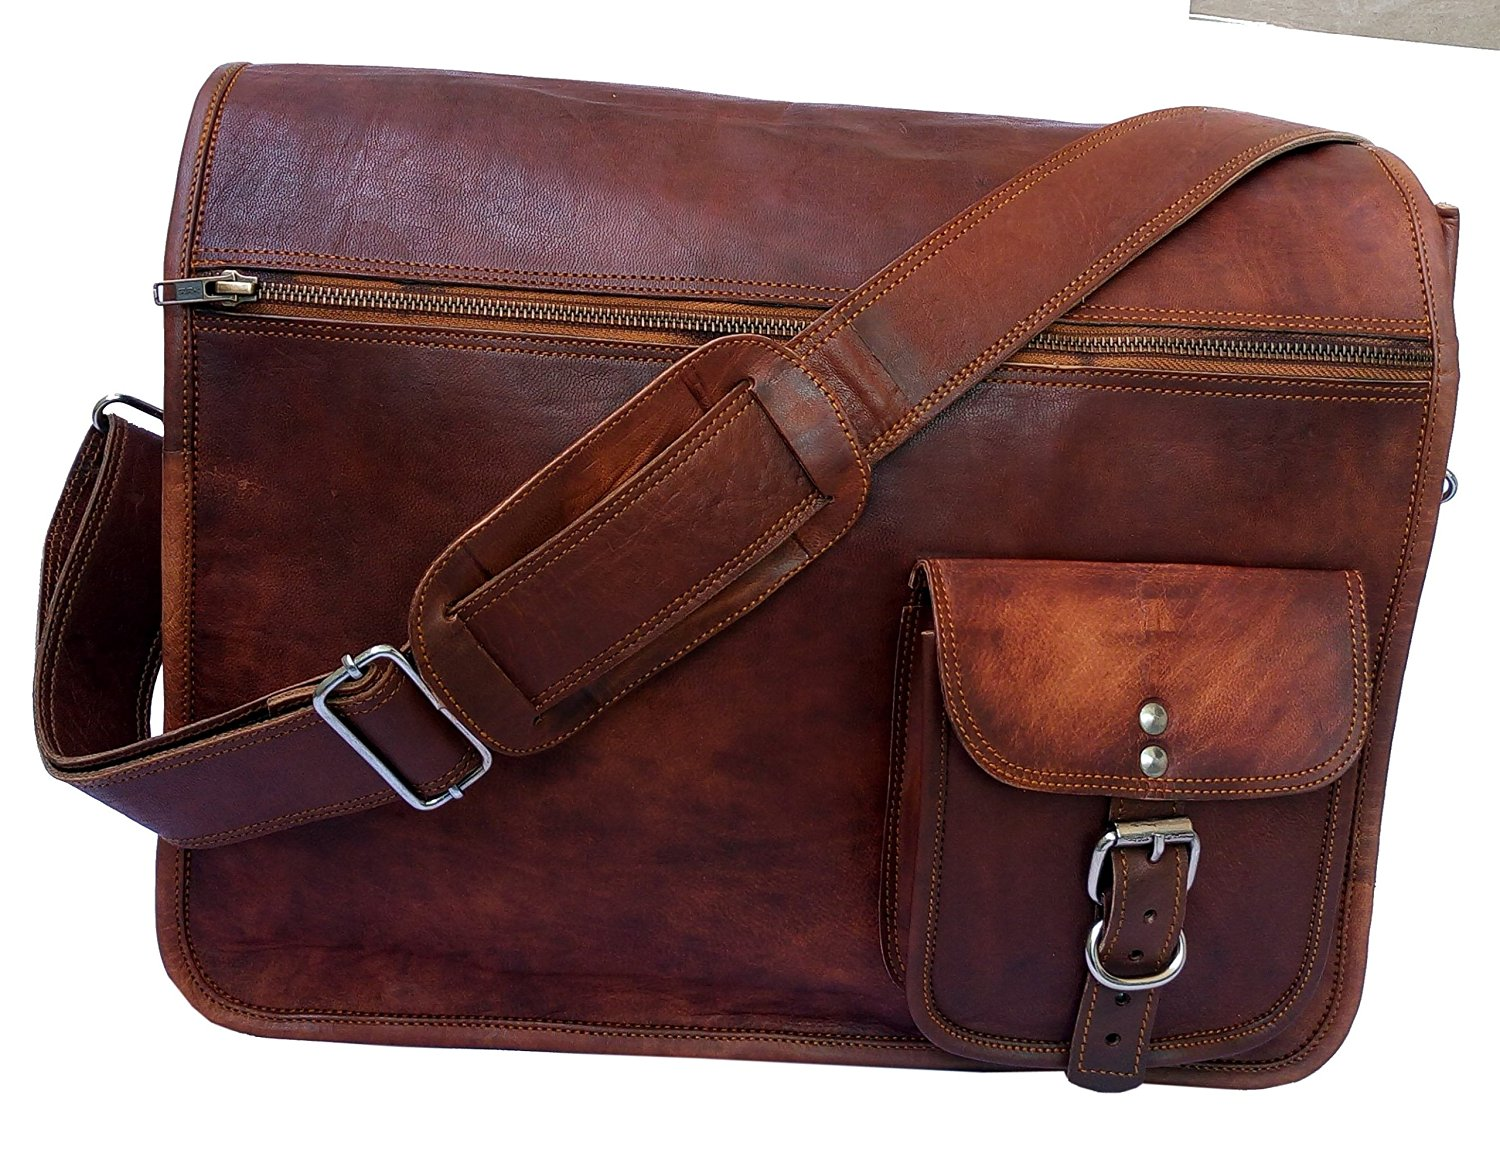 Gbag (T) 16 Inch Vintage Handmade Leather Messenger Bag for Laptop Briefcase Satchel Bag 16X12X4 Inches Brown ...